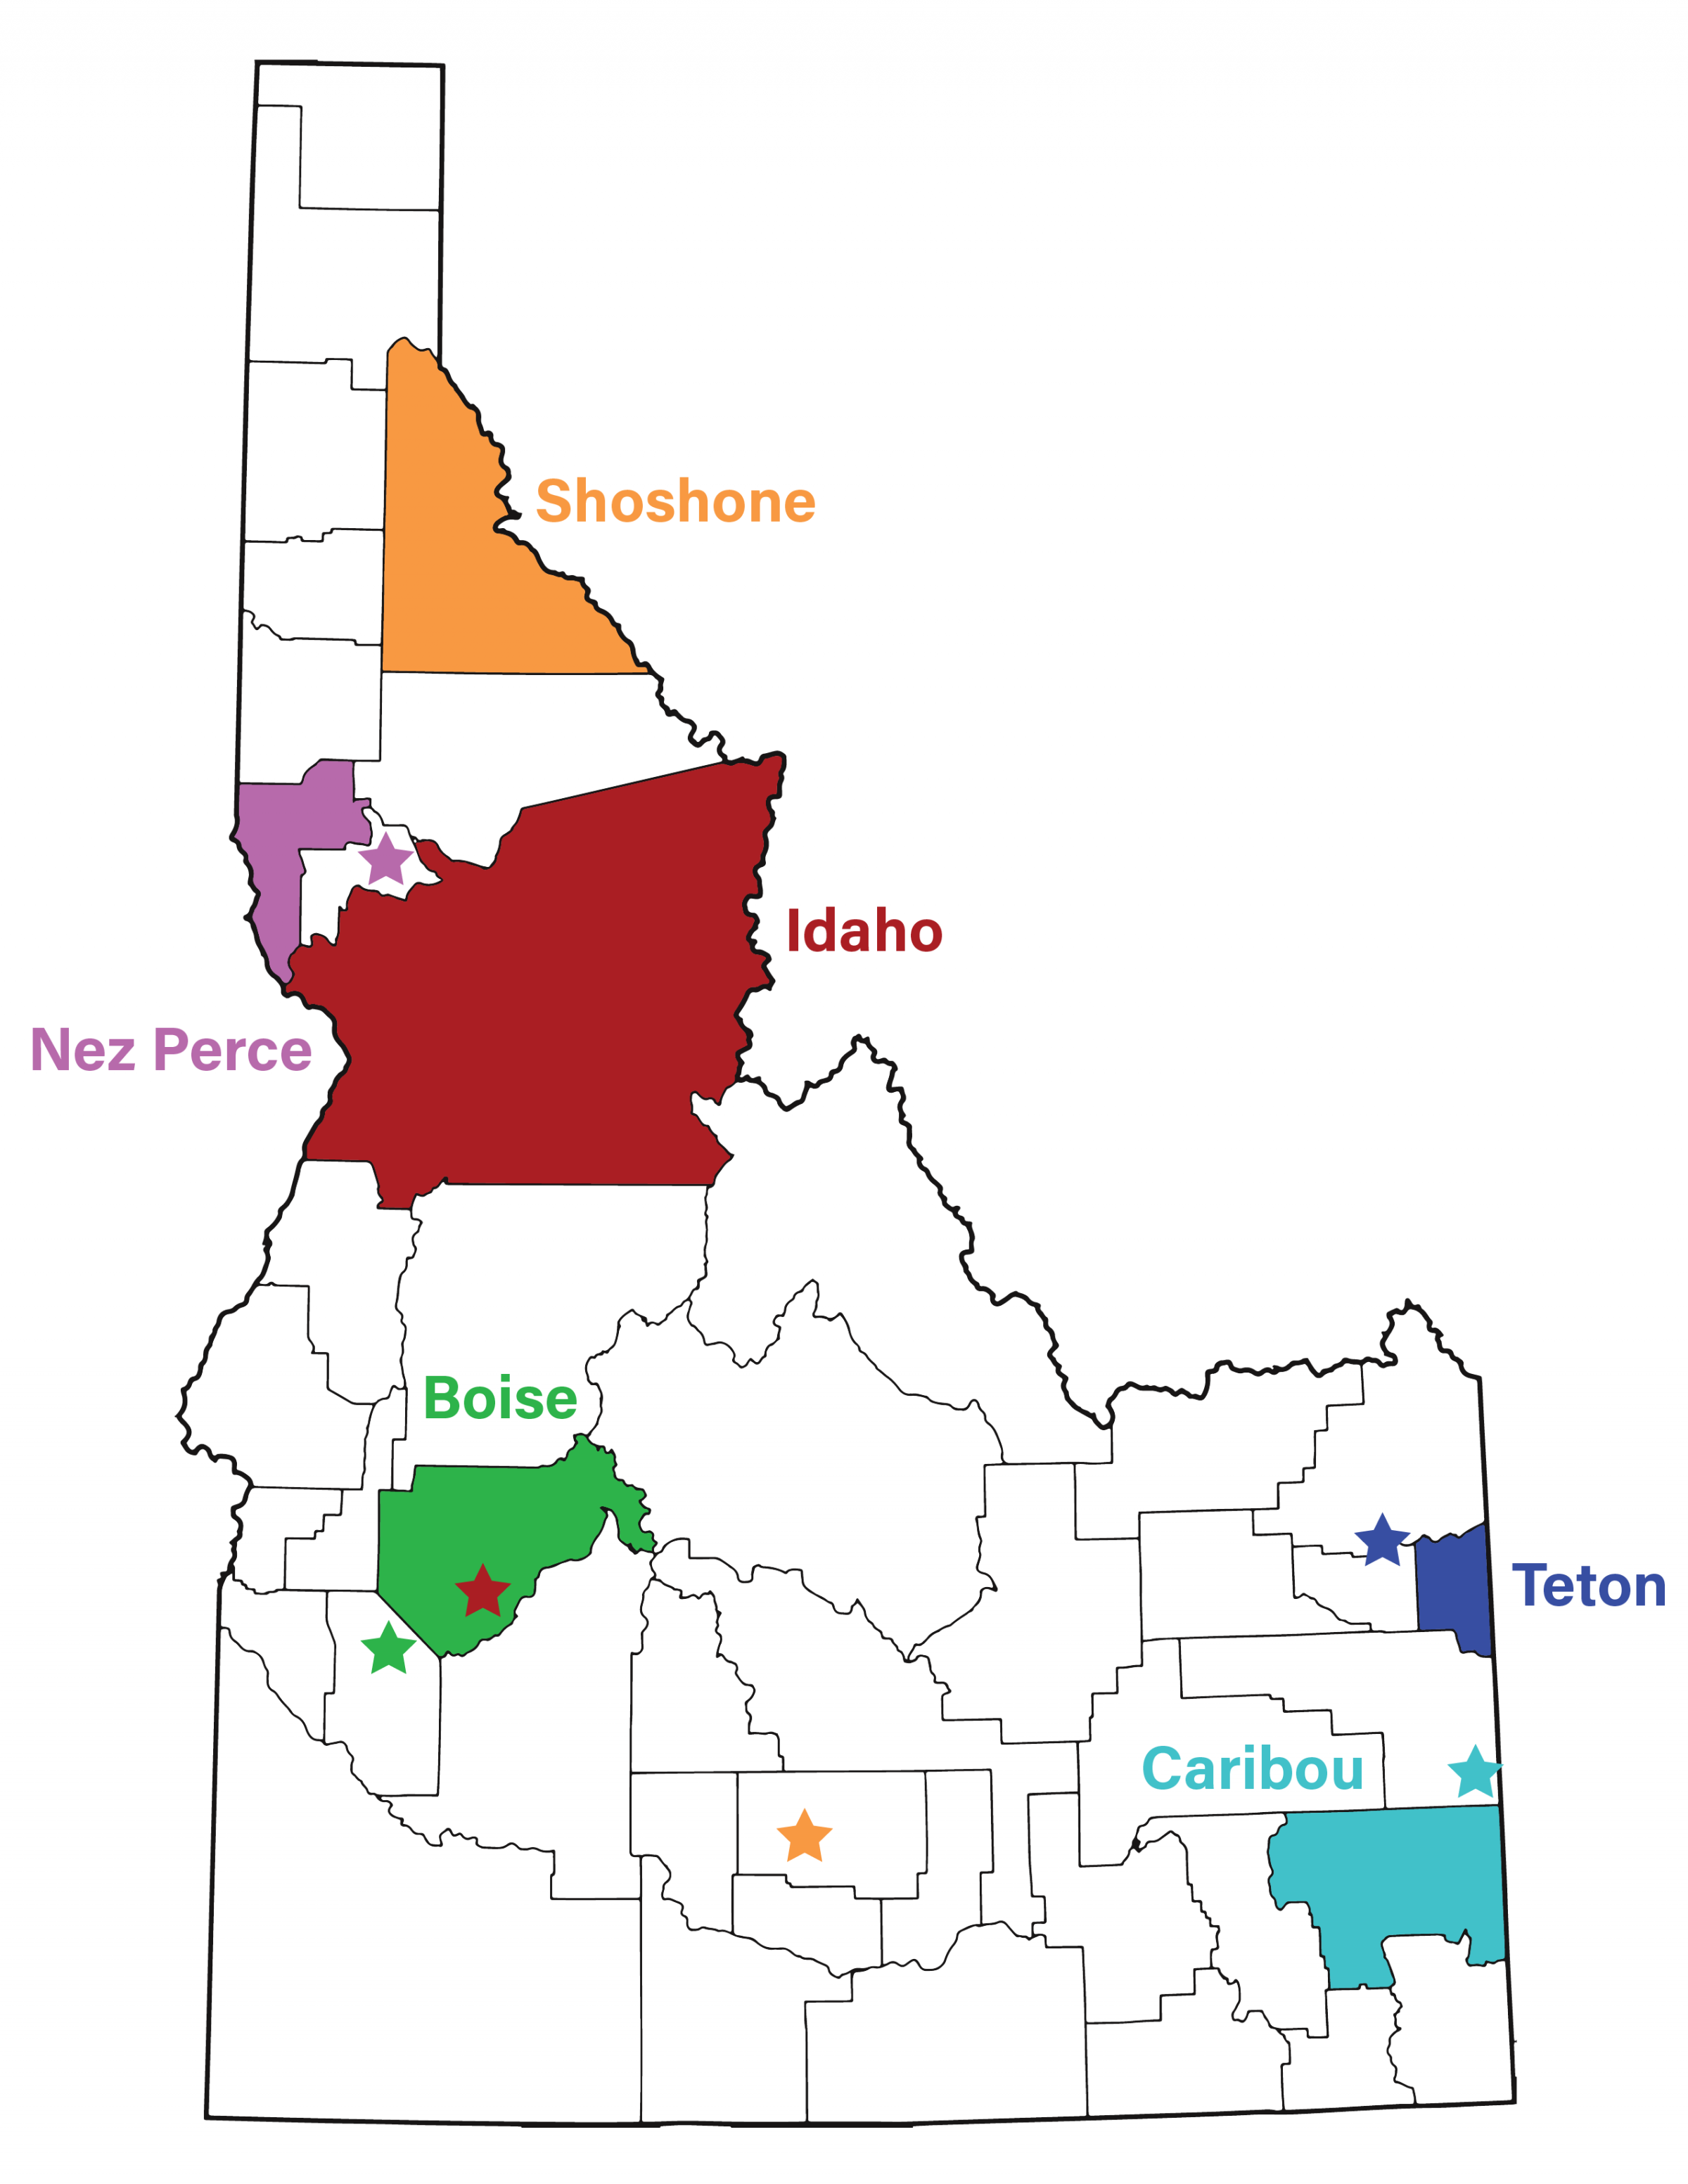 Why Are There Counties And Cities With The Same Name But ... Map Of Idaho With Cities on map of idaho mountains, map texas with cities, map of idaho gold mines, map of idaho and montana, map of arizona cities, iowa map with cities, map of northern idaho cities and towns, map of idaho roads, all idaho cities, map of idaho and oregon, map of washington cities, map of idaho fires, idaho state cities, map of california cities, map of idaho ski resorts, map of idaho state parks, map of twin falls idaho city limits, alaska map with cities, map of idaho rivers, map ohio with cities,